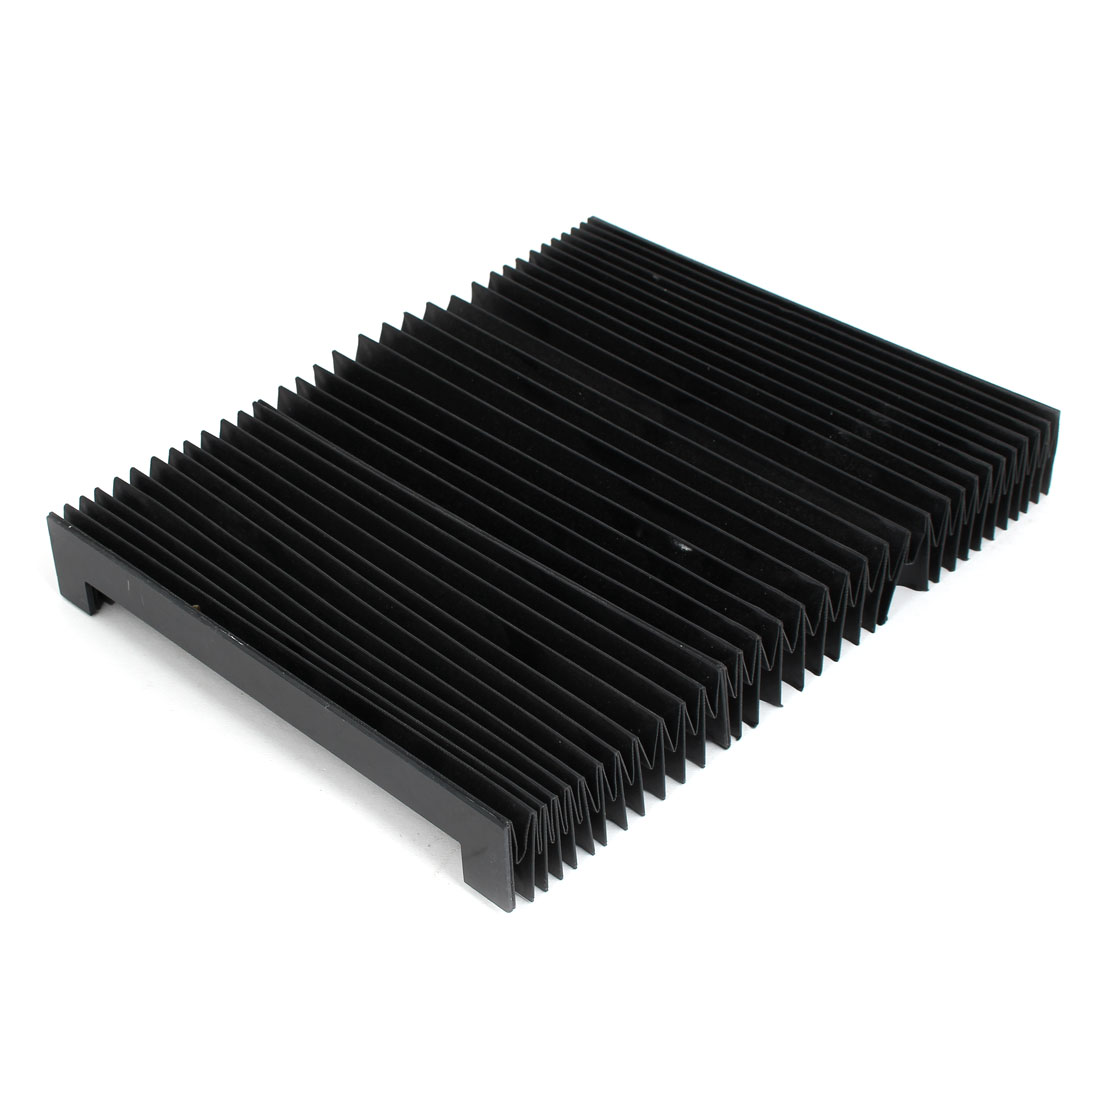 1000mmx240mmx40mm Machine Fitting Foldable Dust Protective Cover Black